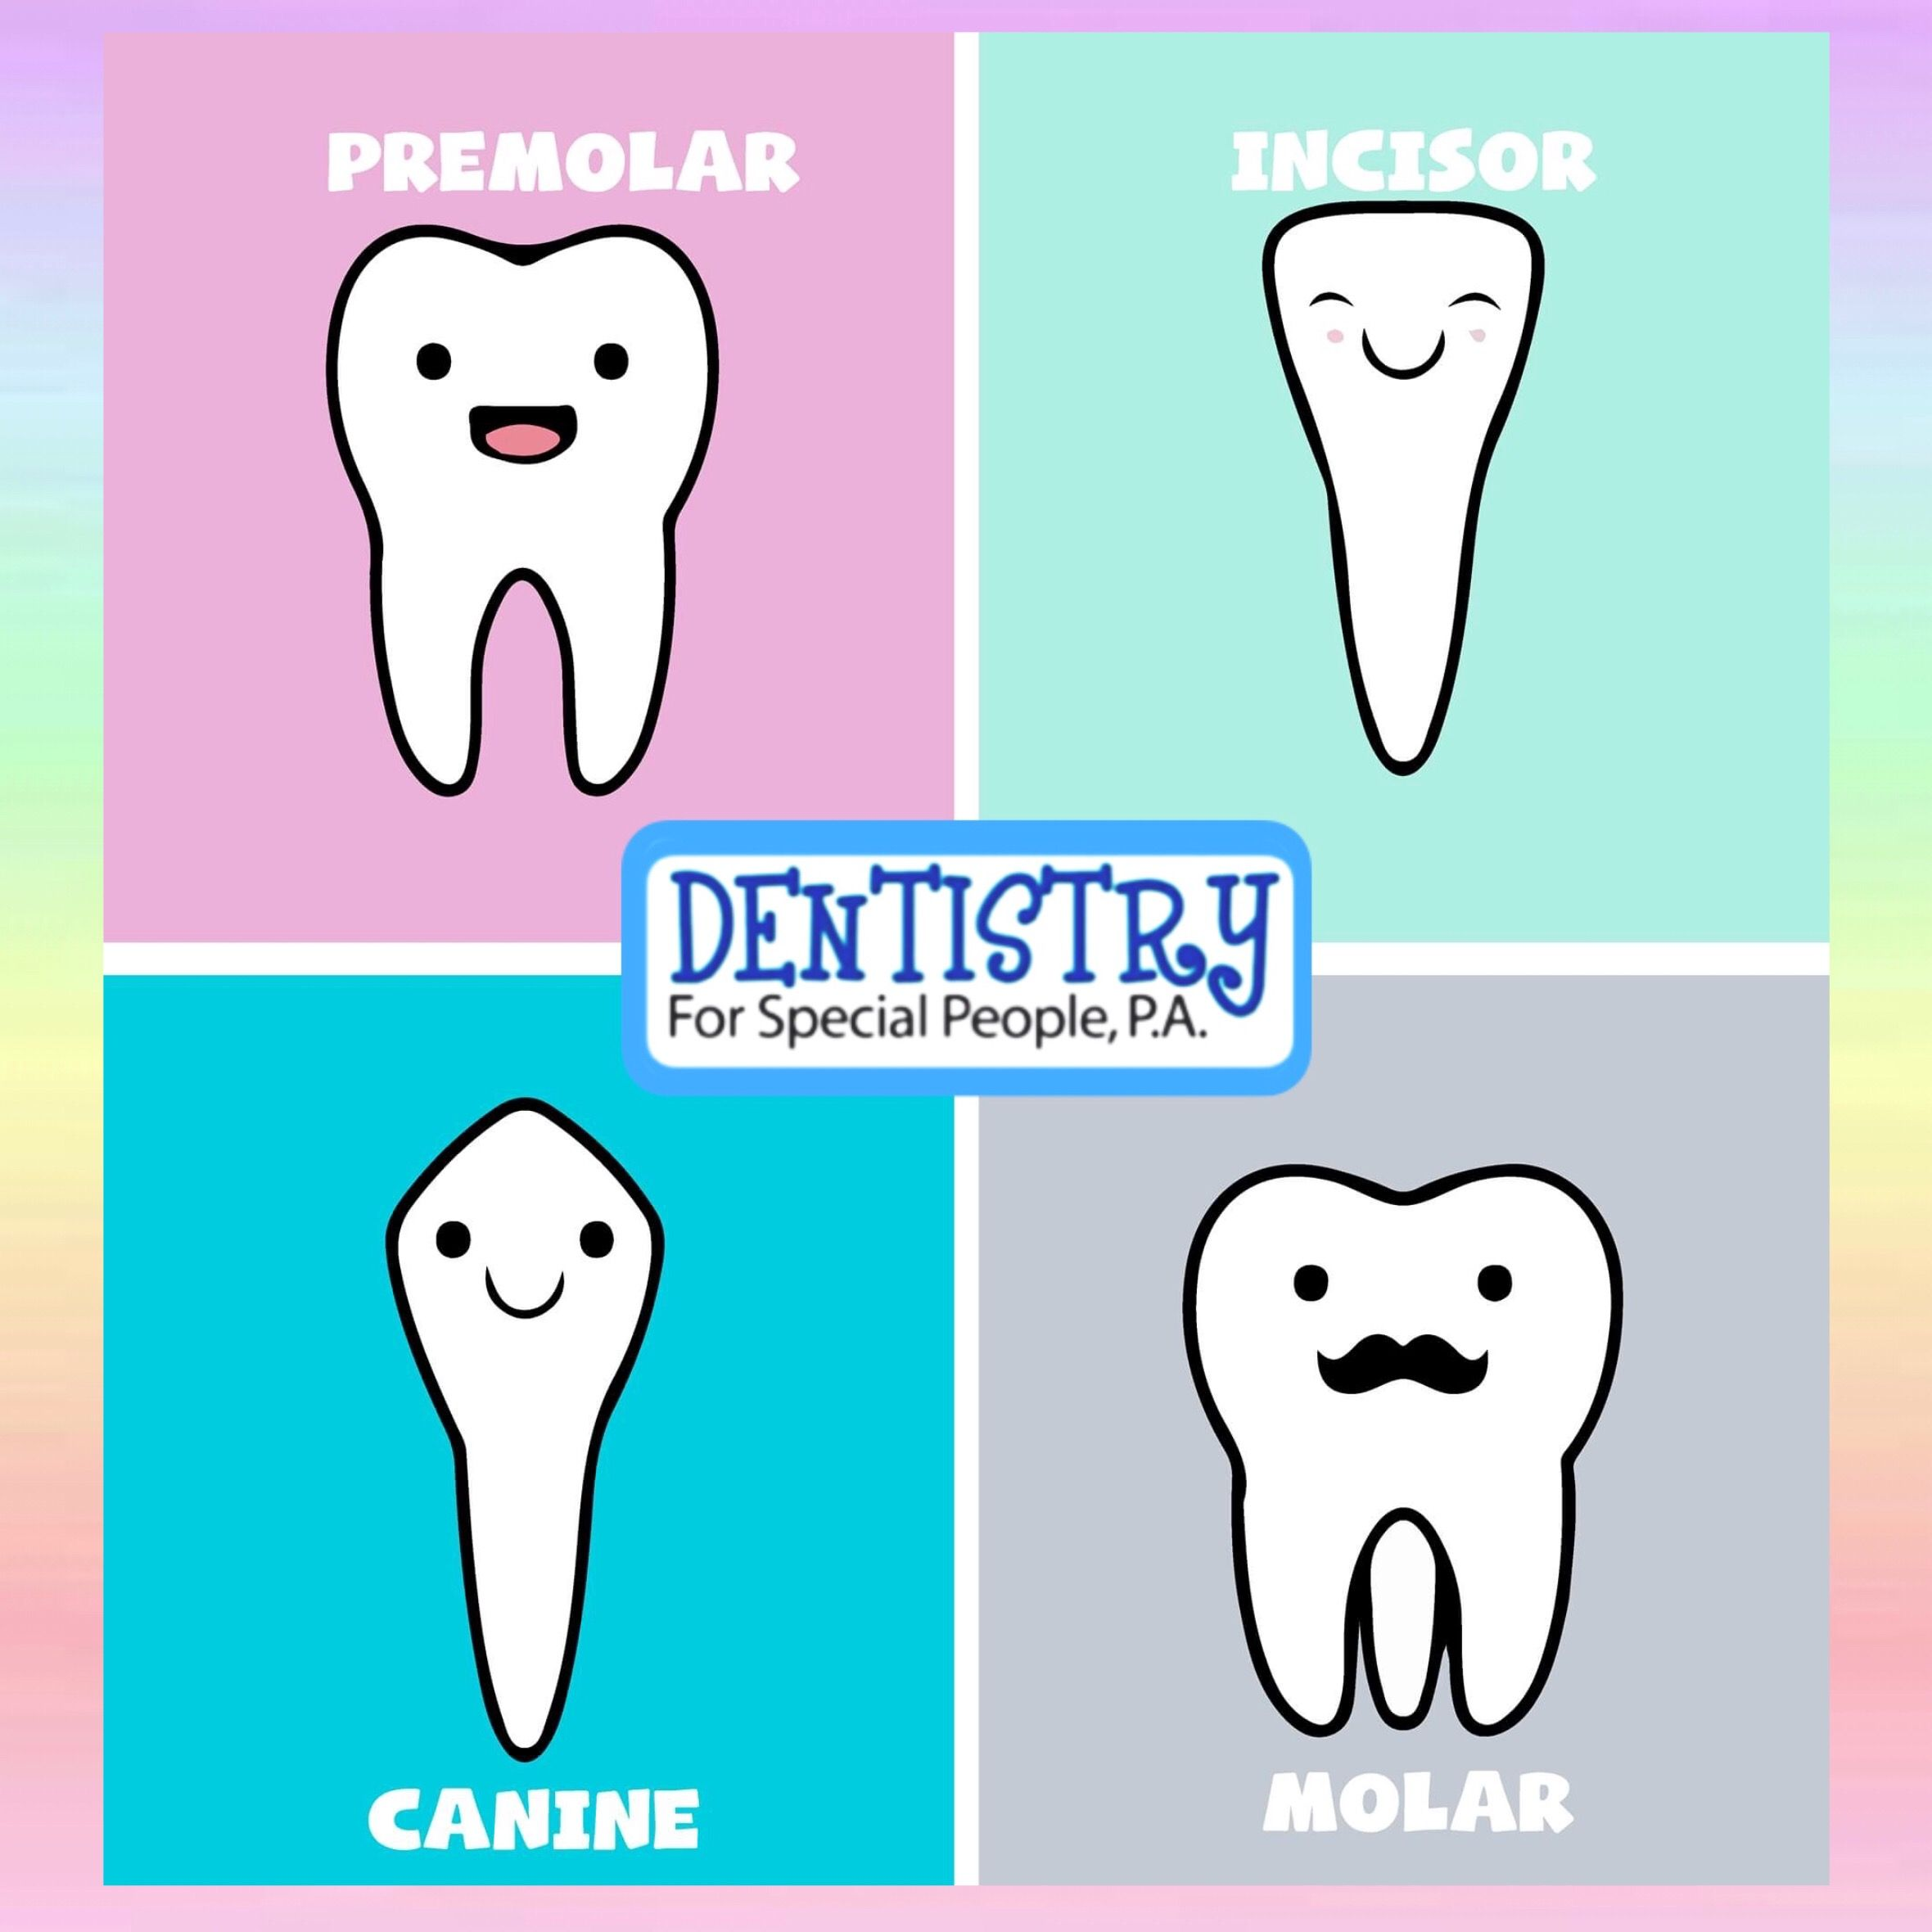 Did You Know Their Are 4 Types Of Teeth Incisors